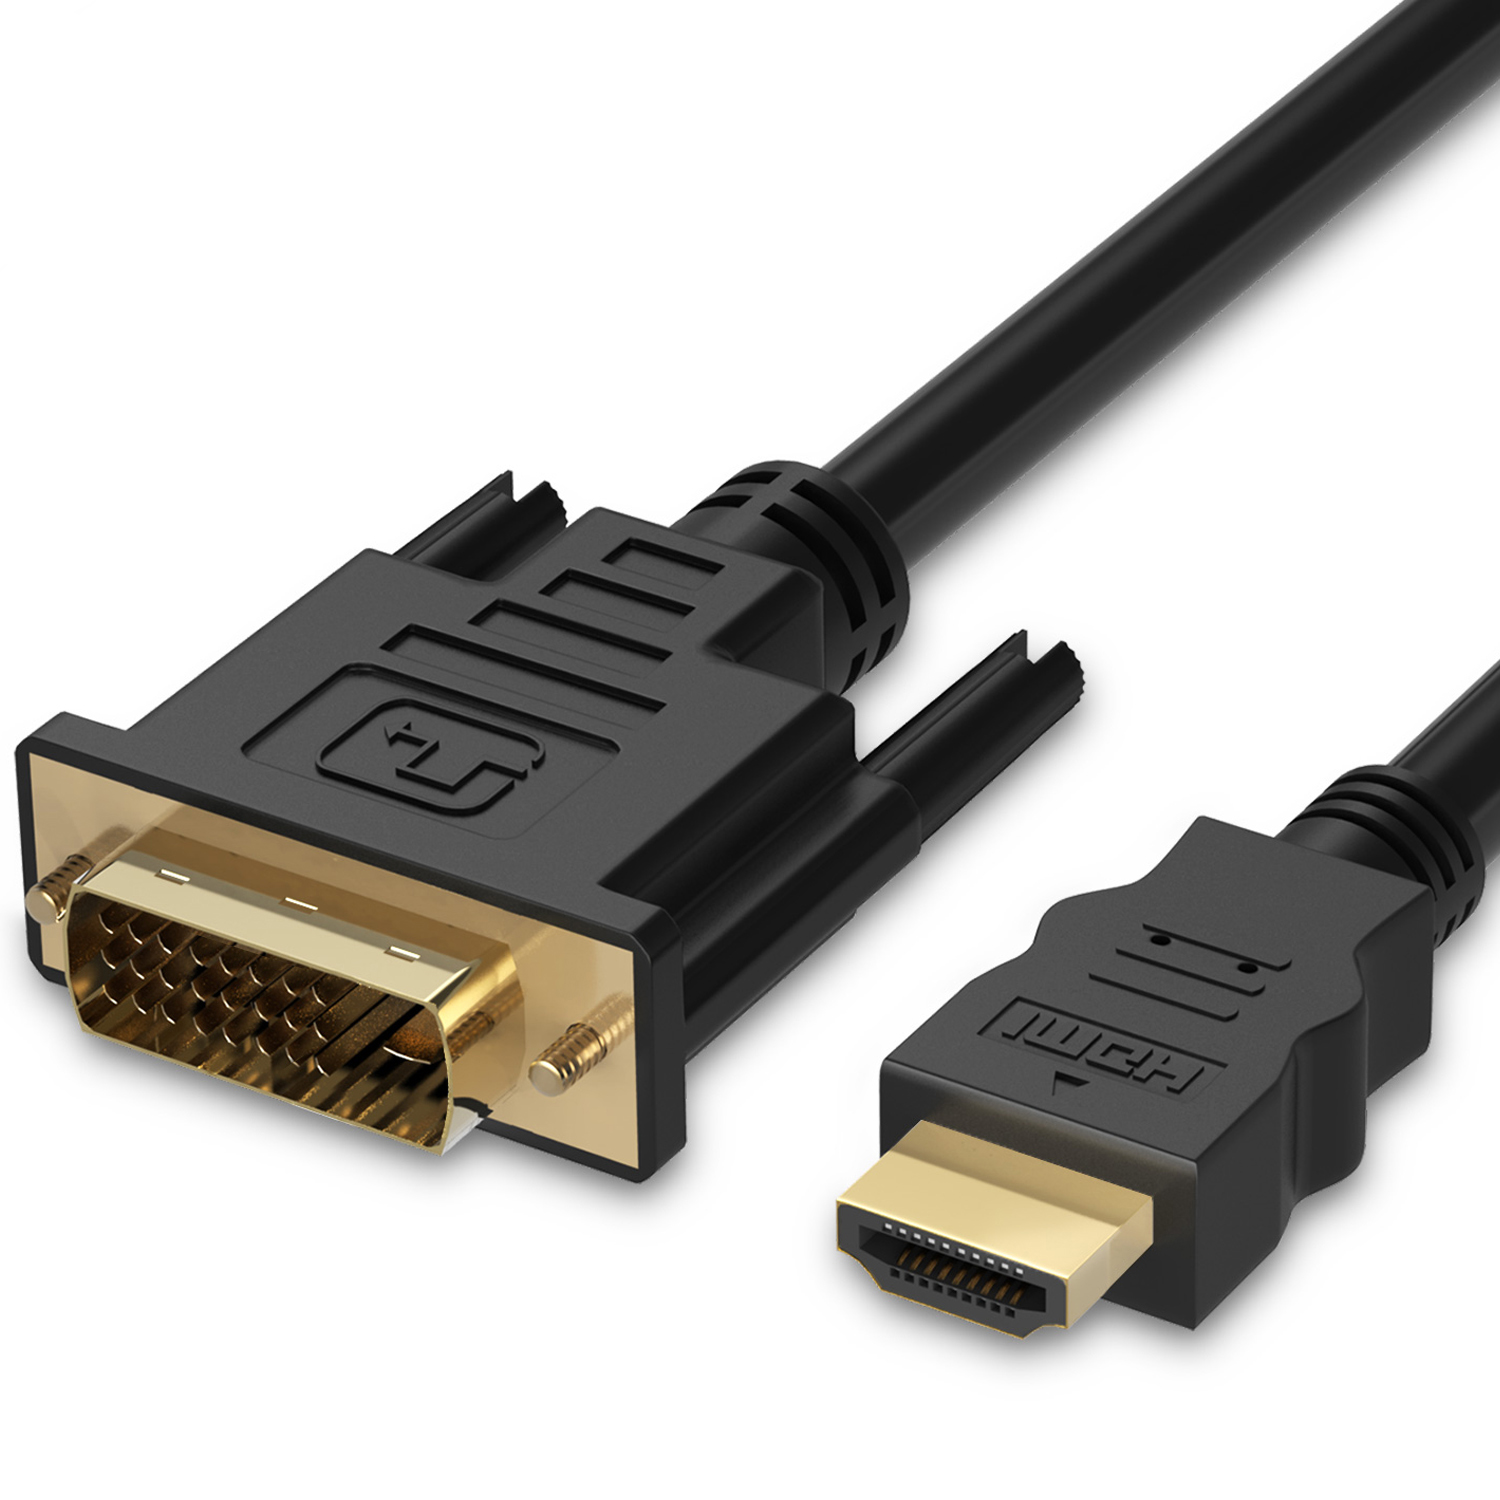 HDMI to DVI Cable (6 FT), Fosmon DVI-D to HDMI Cord Bi-Directional Gold Plated High Speed HDMI (Type A) to DVI for HDTV, Apple TV, Smart TV, PS3/PS4, Xbox One X/One S/360, Wii U